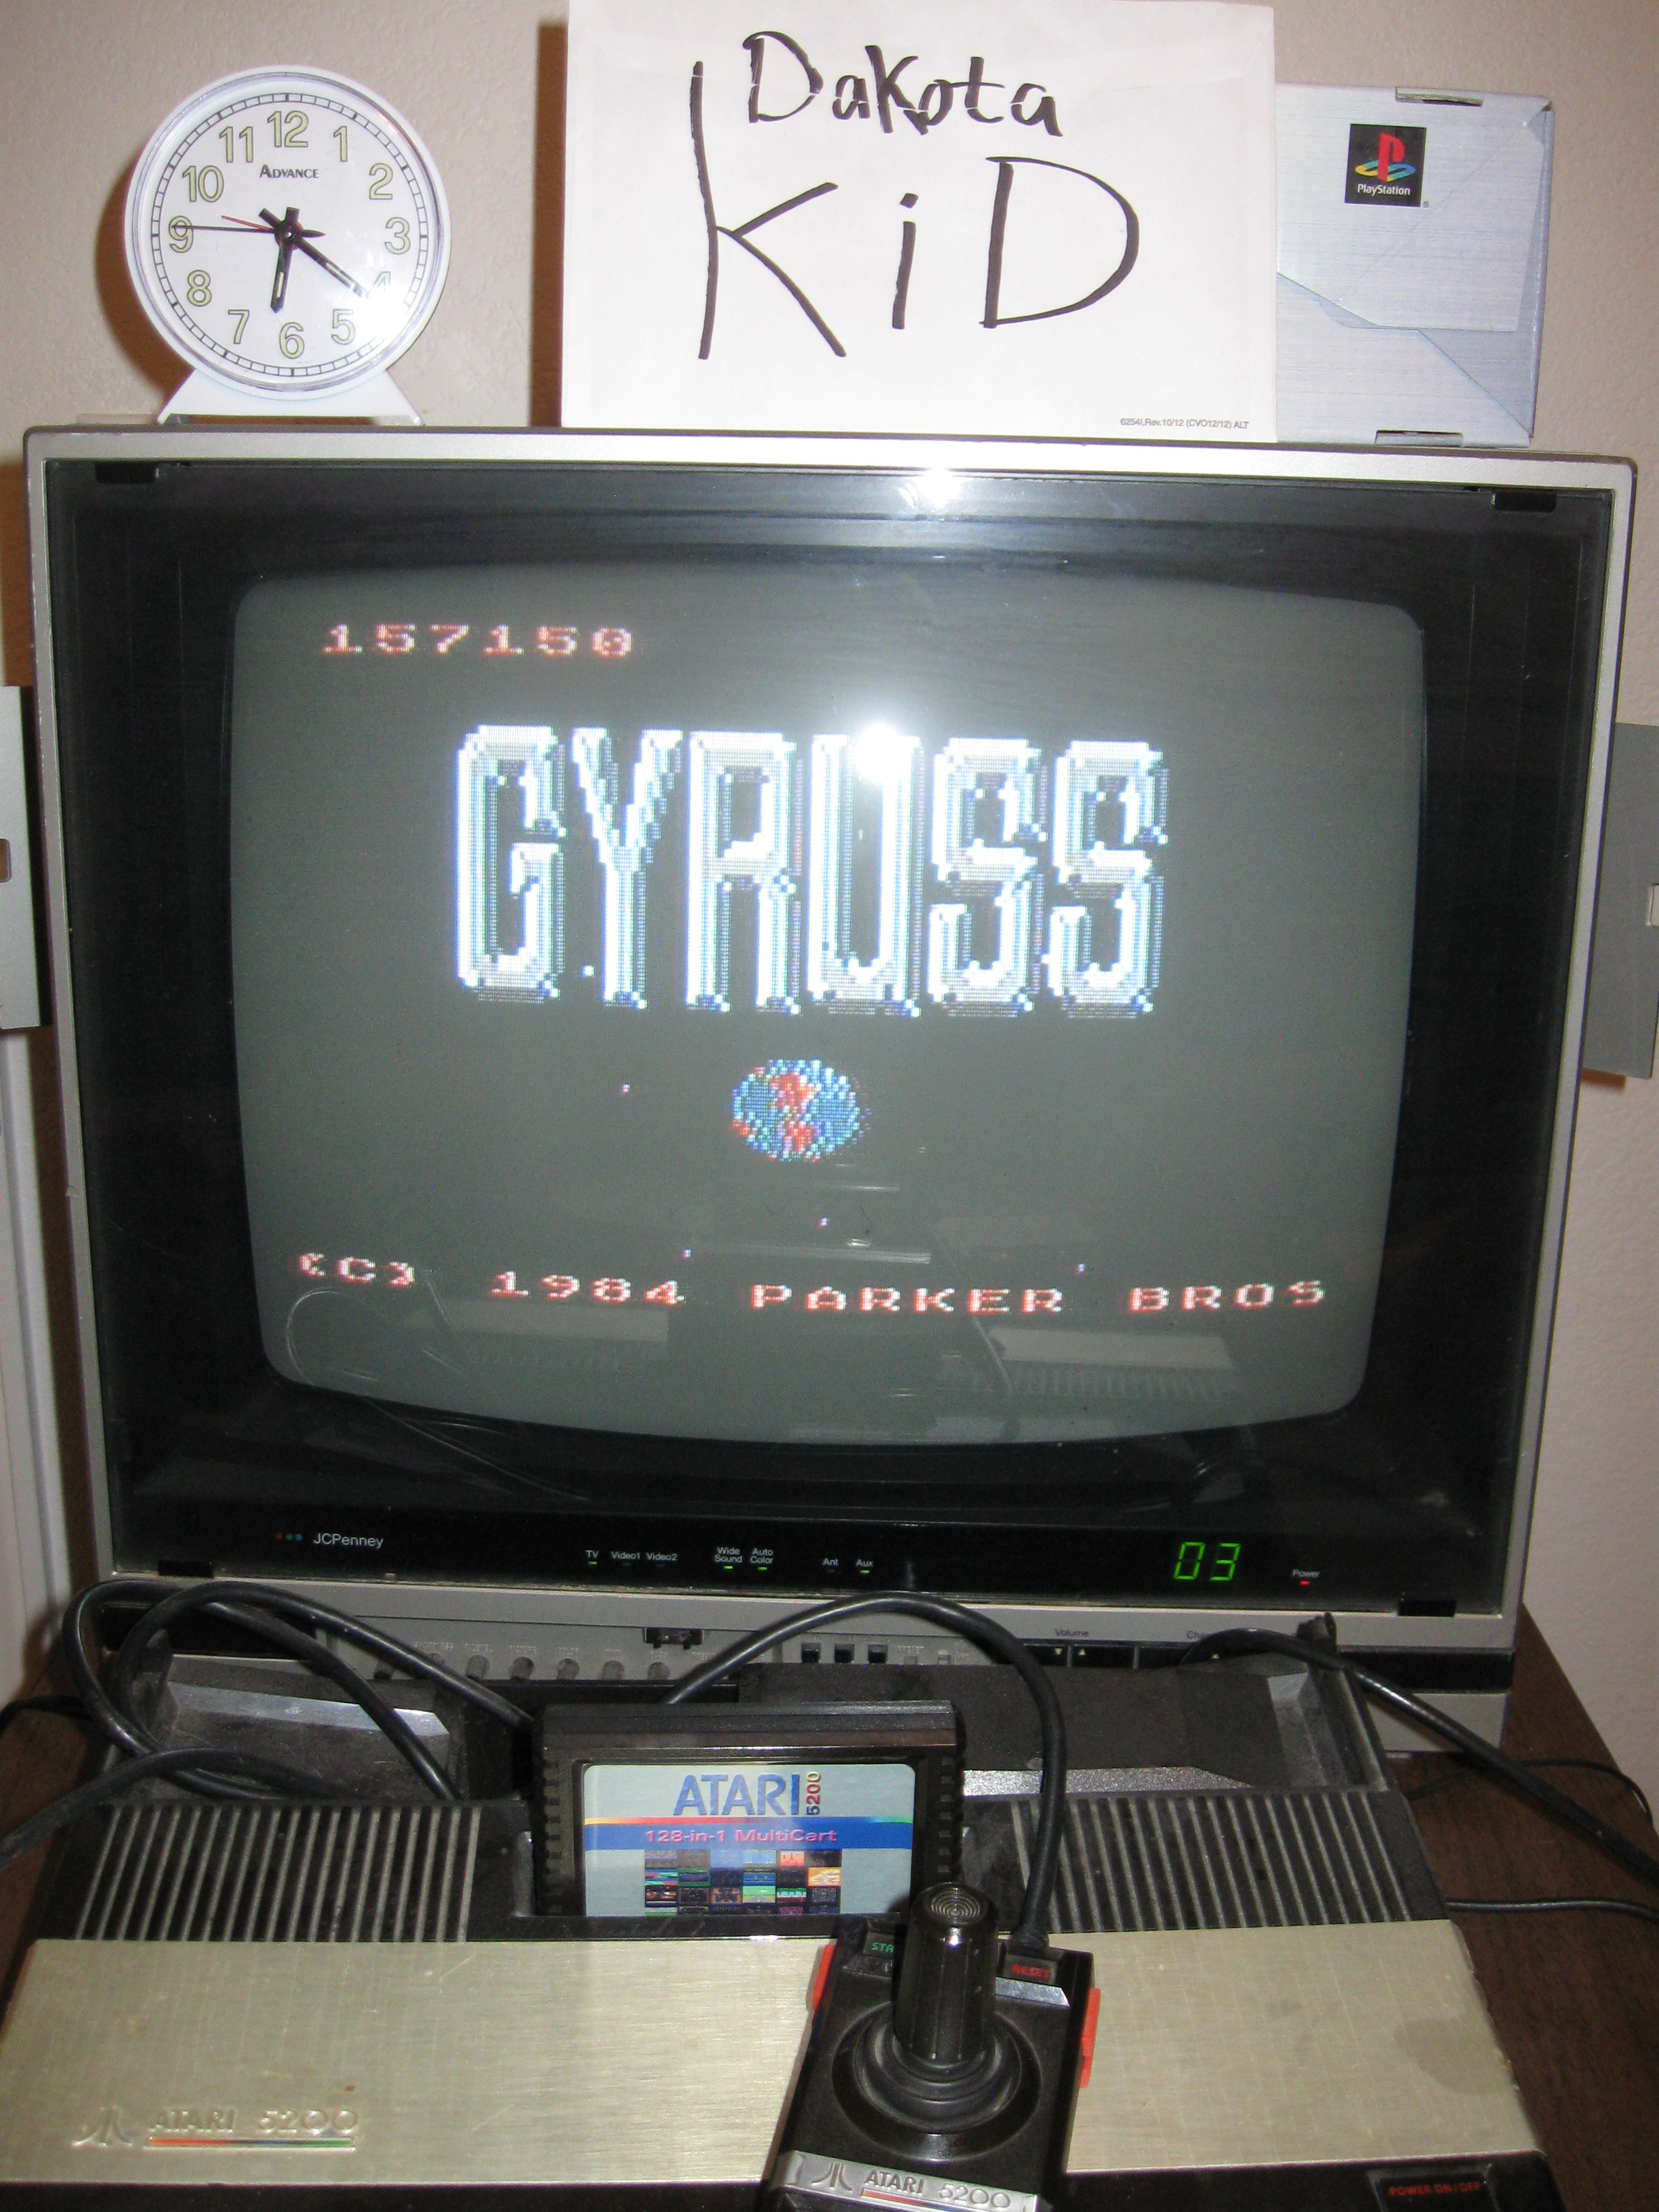 DakotaKid: Gyruss (Atari 5200) 157,150 points on 2016-04-14 19:17:21